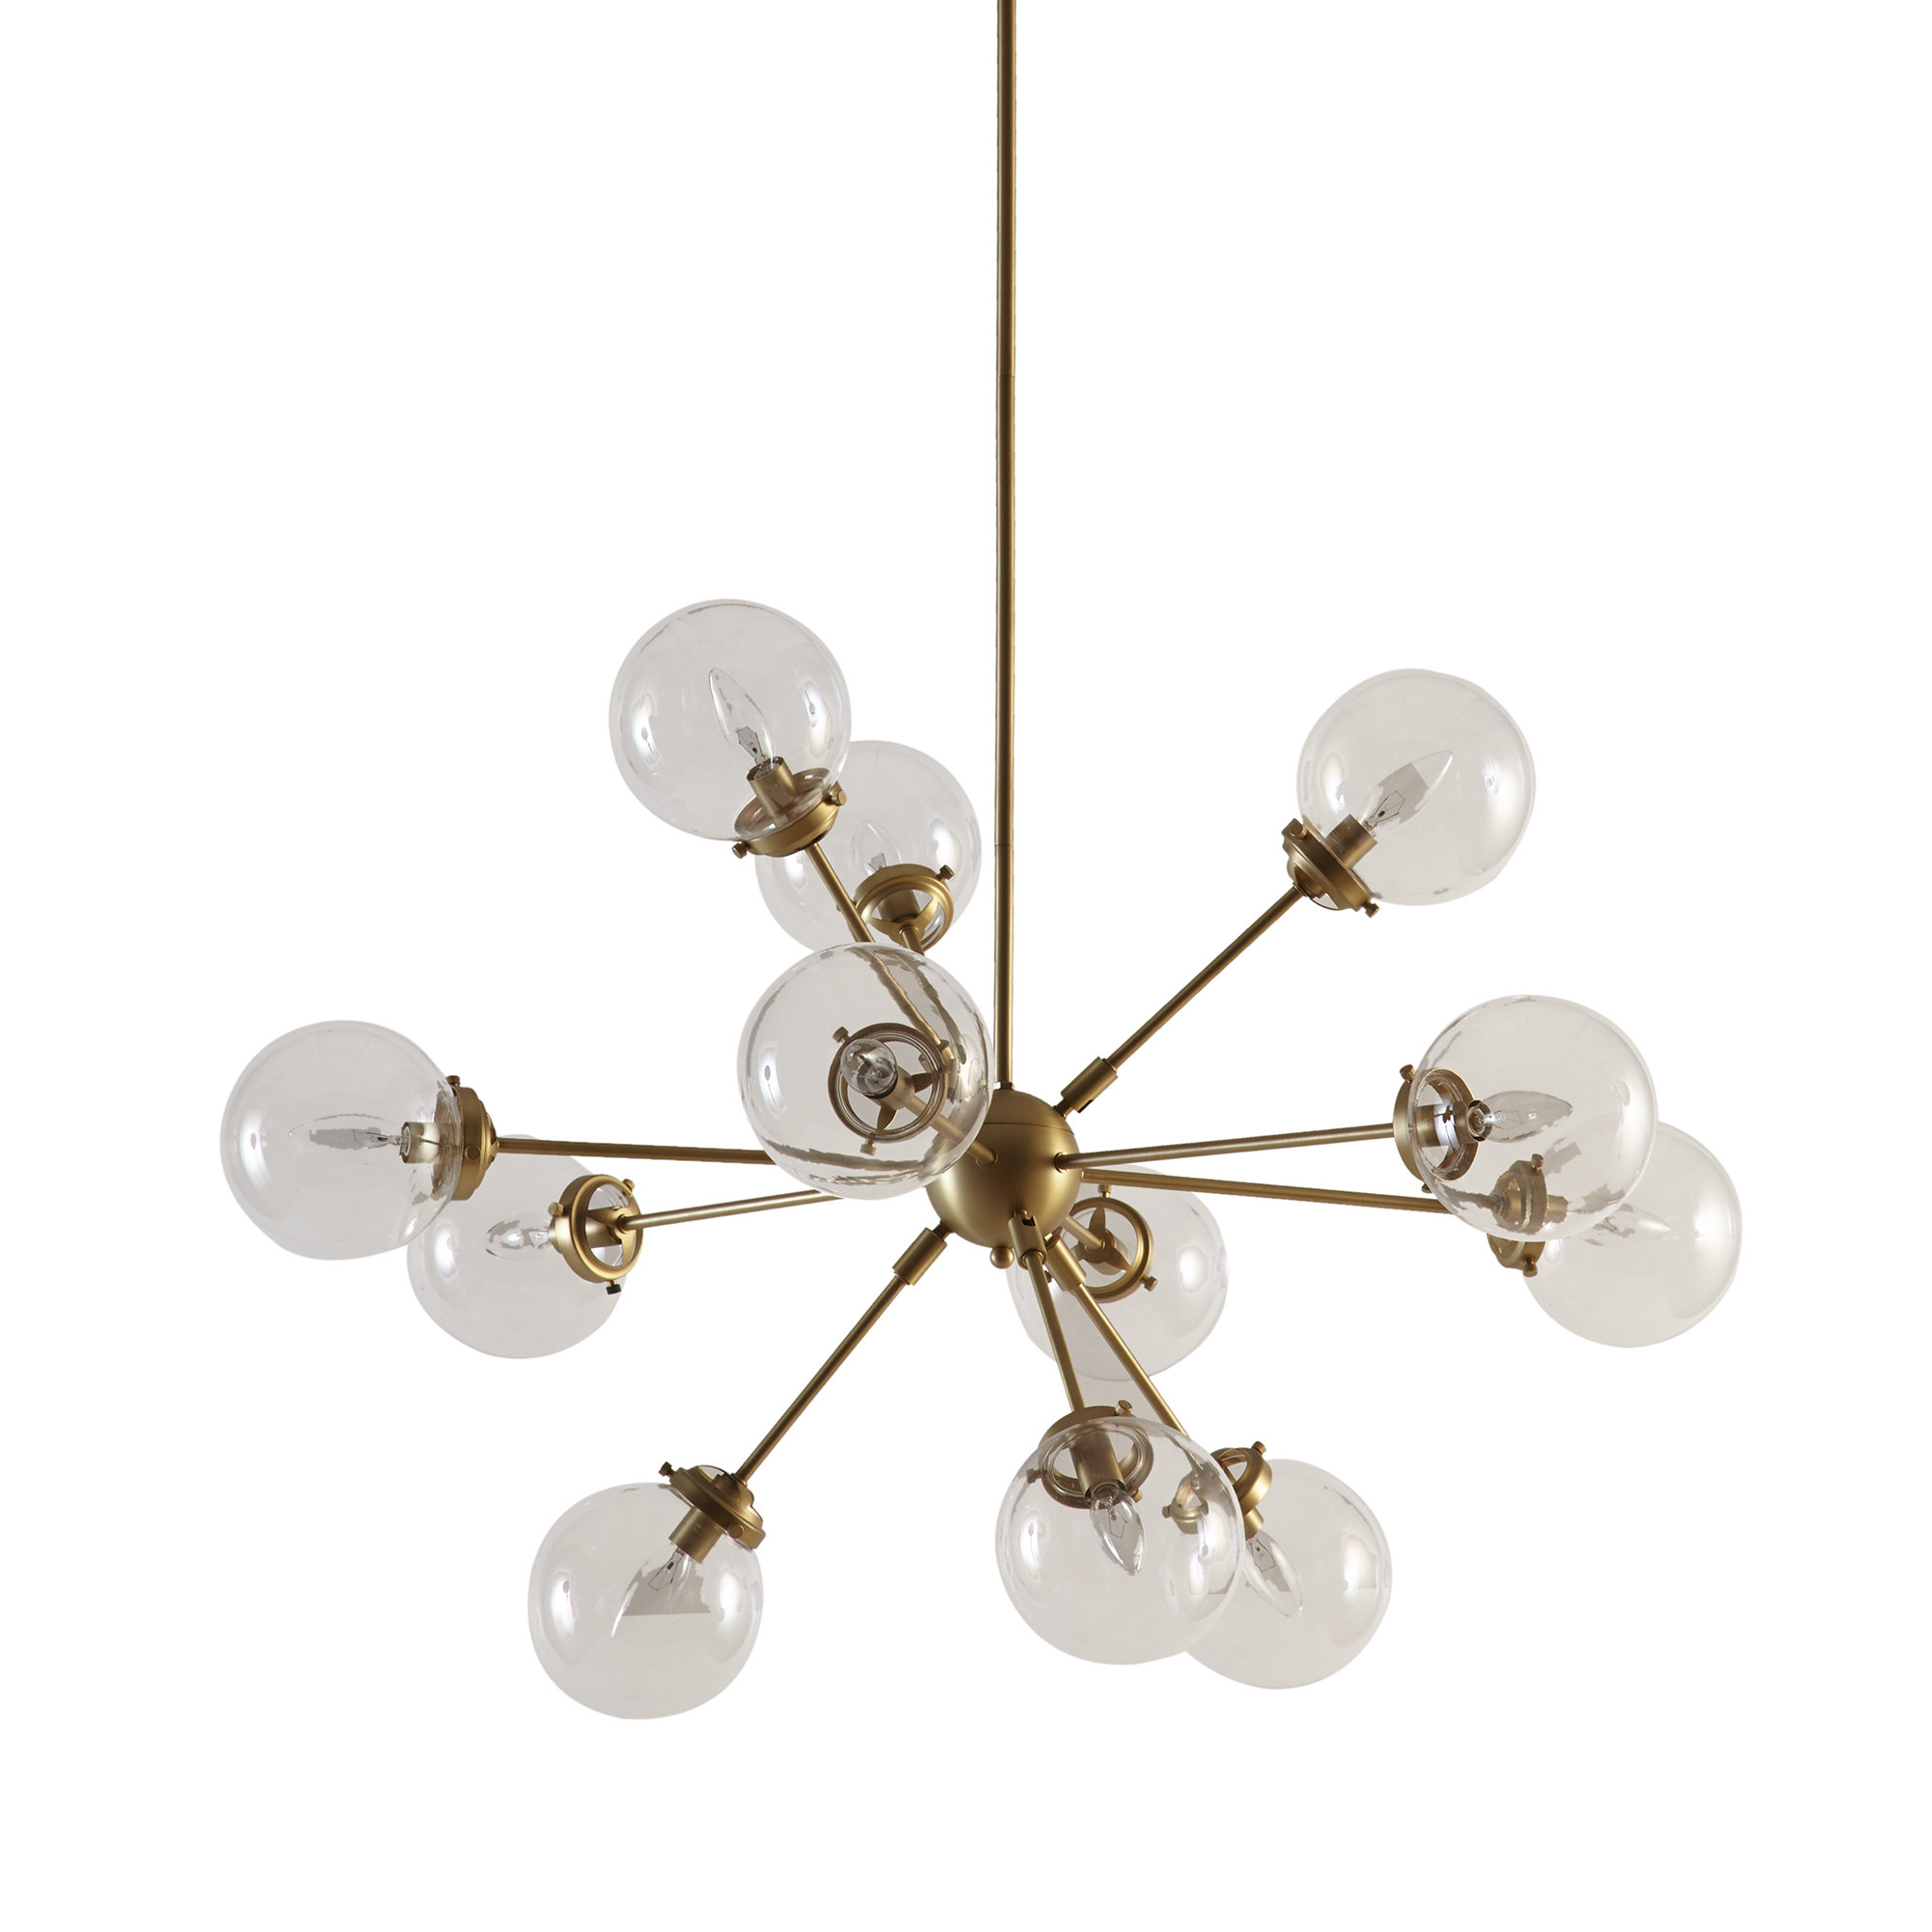 Widely Used Nelly 12 Light Sputnik Chandeliers Inside Asher 12 Light Sputnik Chandelier (Gallery 10 of 20)